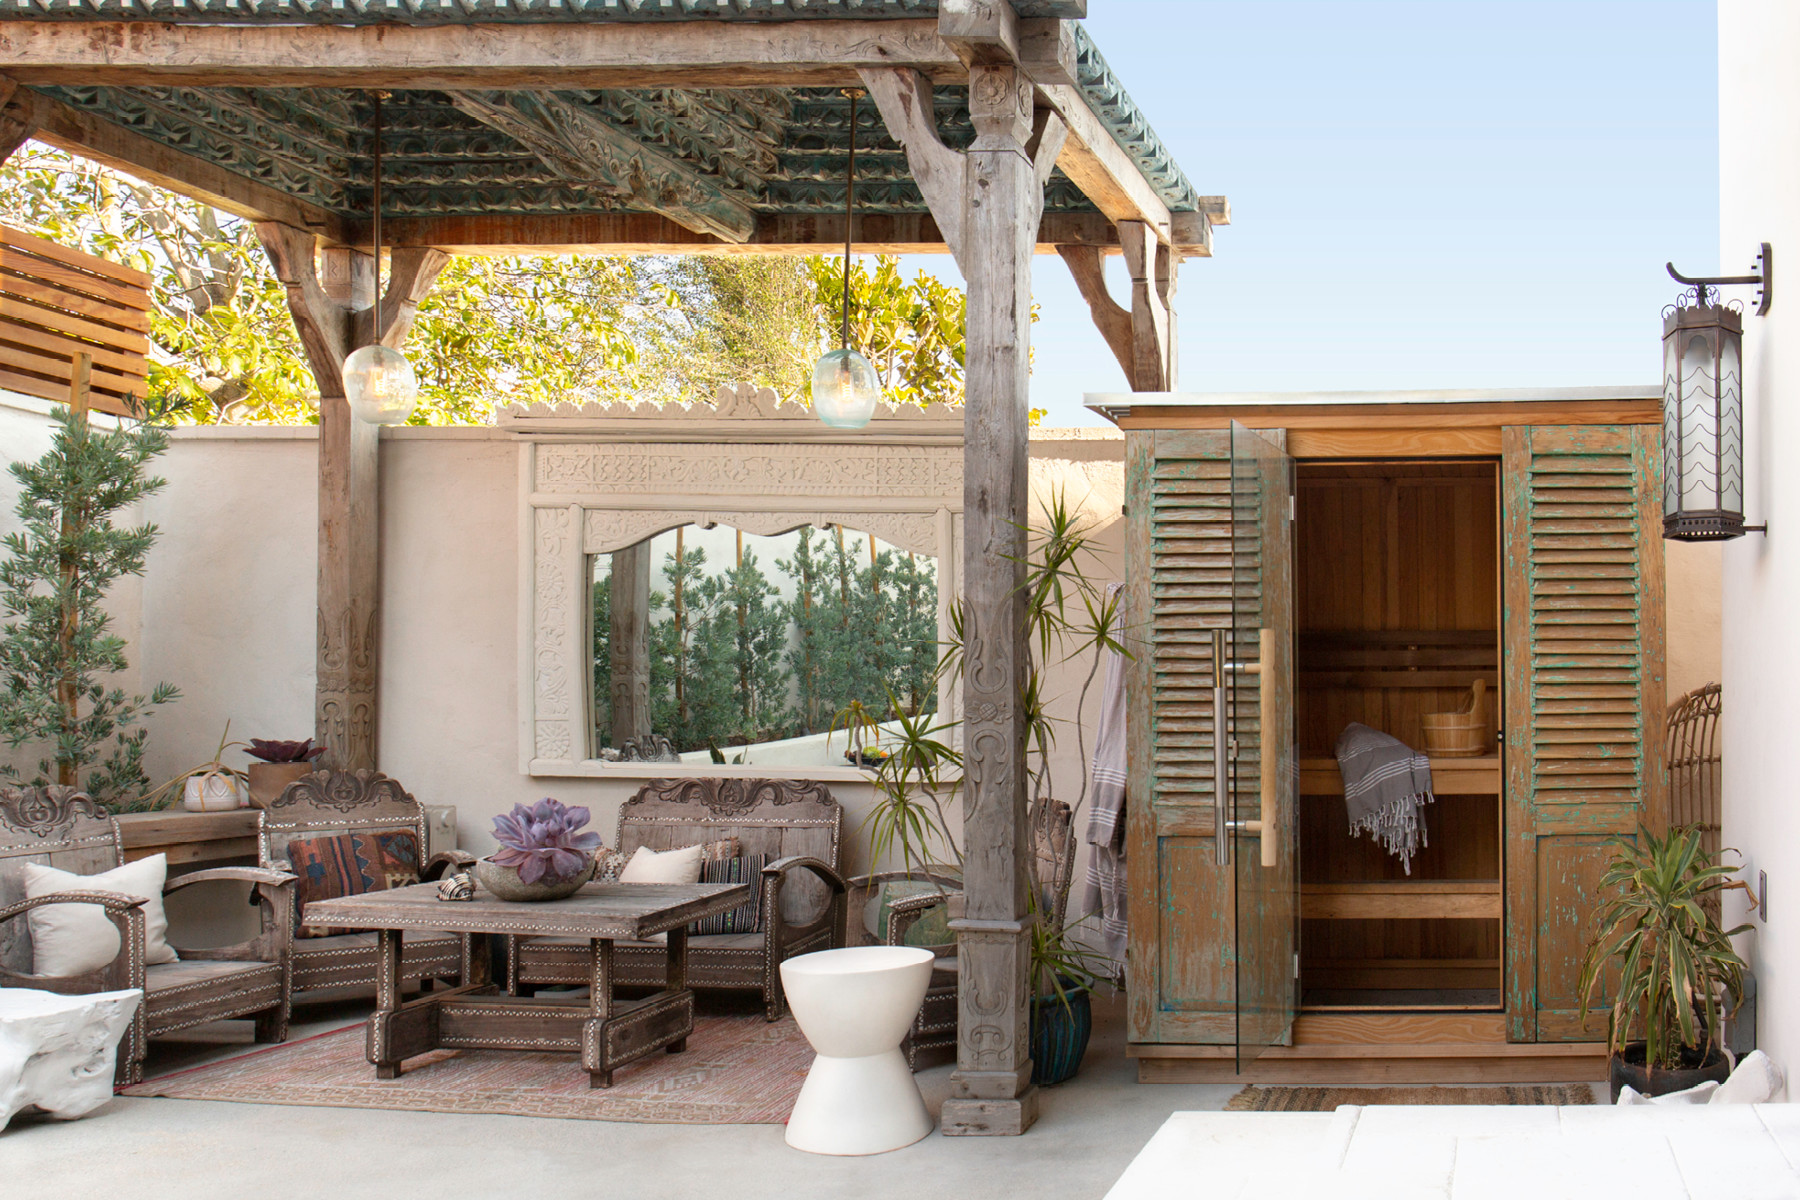 The family's backyard offers the perfect mix of indoor-outdoor living. Custom Patio Furniture | Custom Joglo |Almost Heaven Suana.